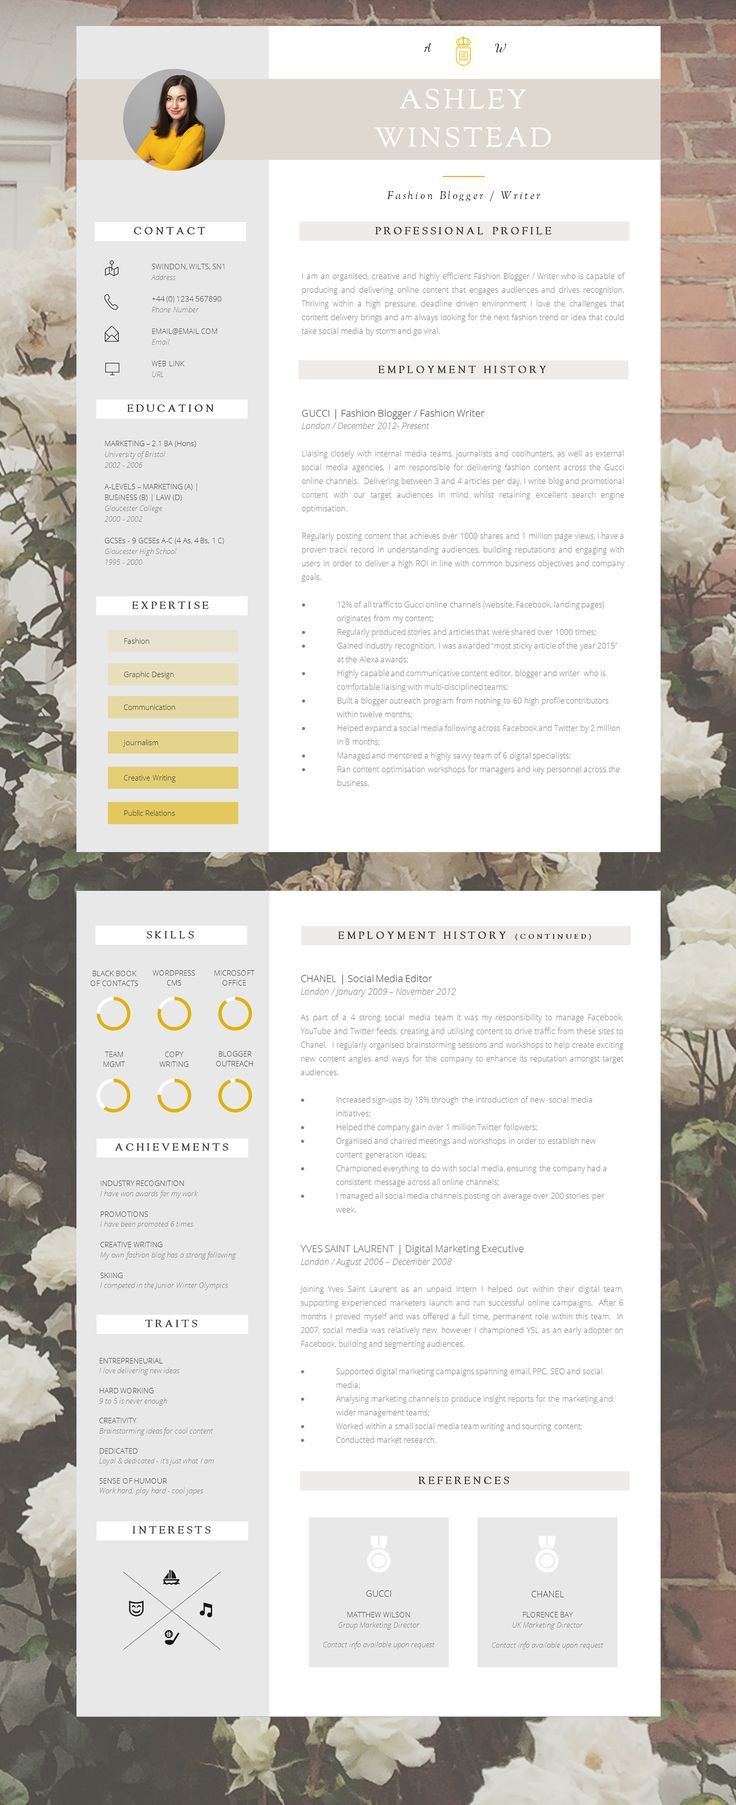 Resume Template | Creative Resume Template | Two Page Professional Resume +  Cover Letter U0026 Advice | Printable Word Resume | The   Creative Resume Layouts